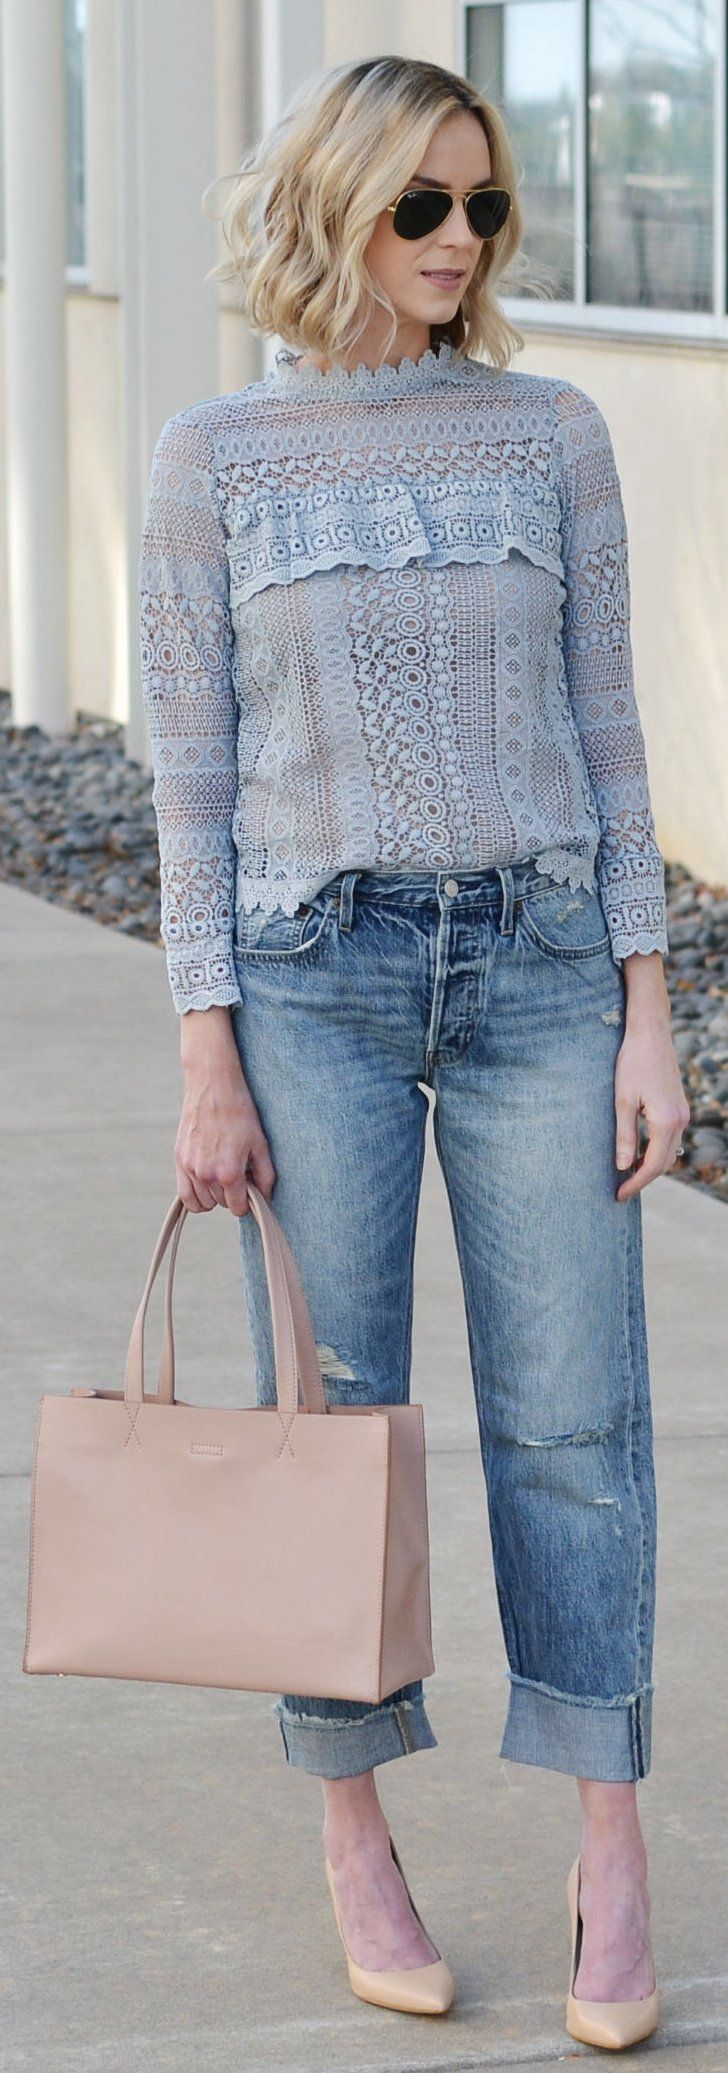 #spring #fashion /  Blue Lace Top / Ripped Denim / Beige Pumps / Leather Tote Bag